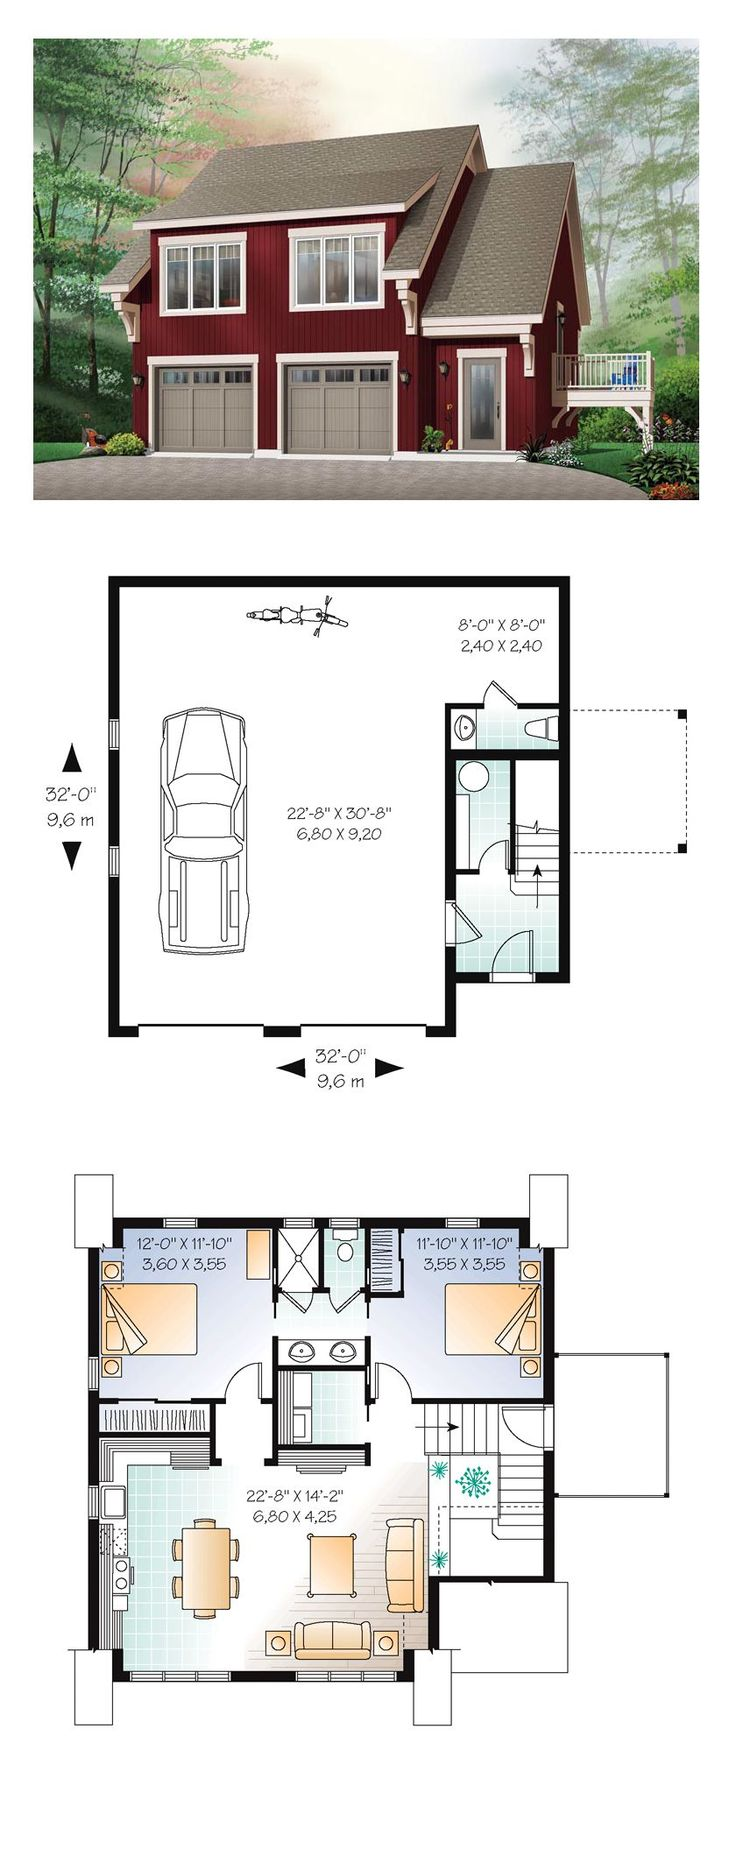 Best 25 carriage house plans ideas on pinterest garage 3 bedroom carriage house plans